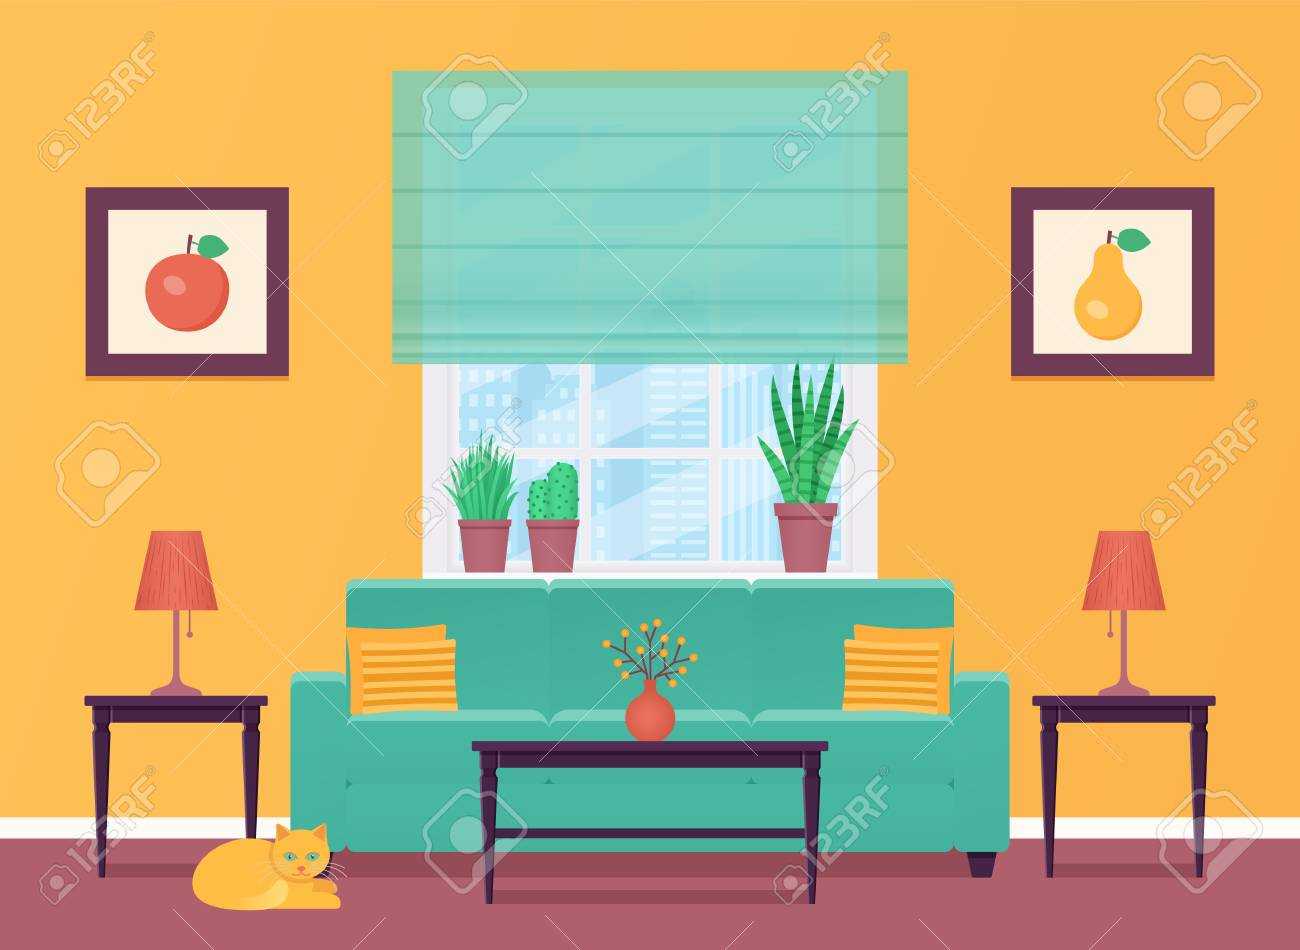 Living Room Vector Room Interior With Furniture Home Lounge Royalty Free Cliparts Vectors And Stock Illustration Image 121941941